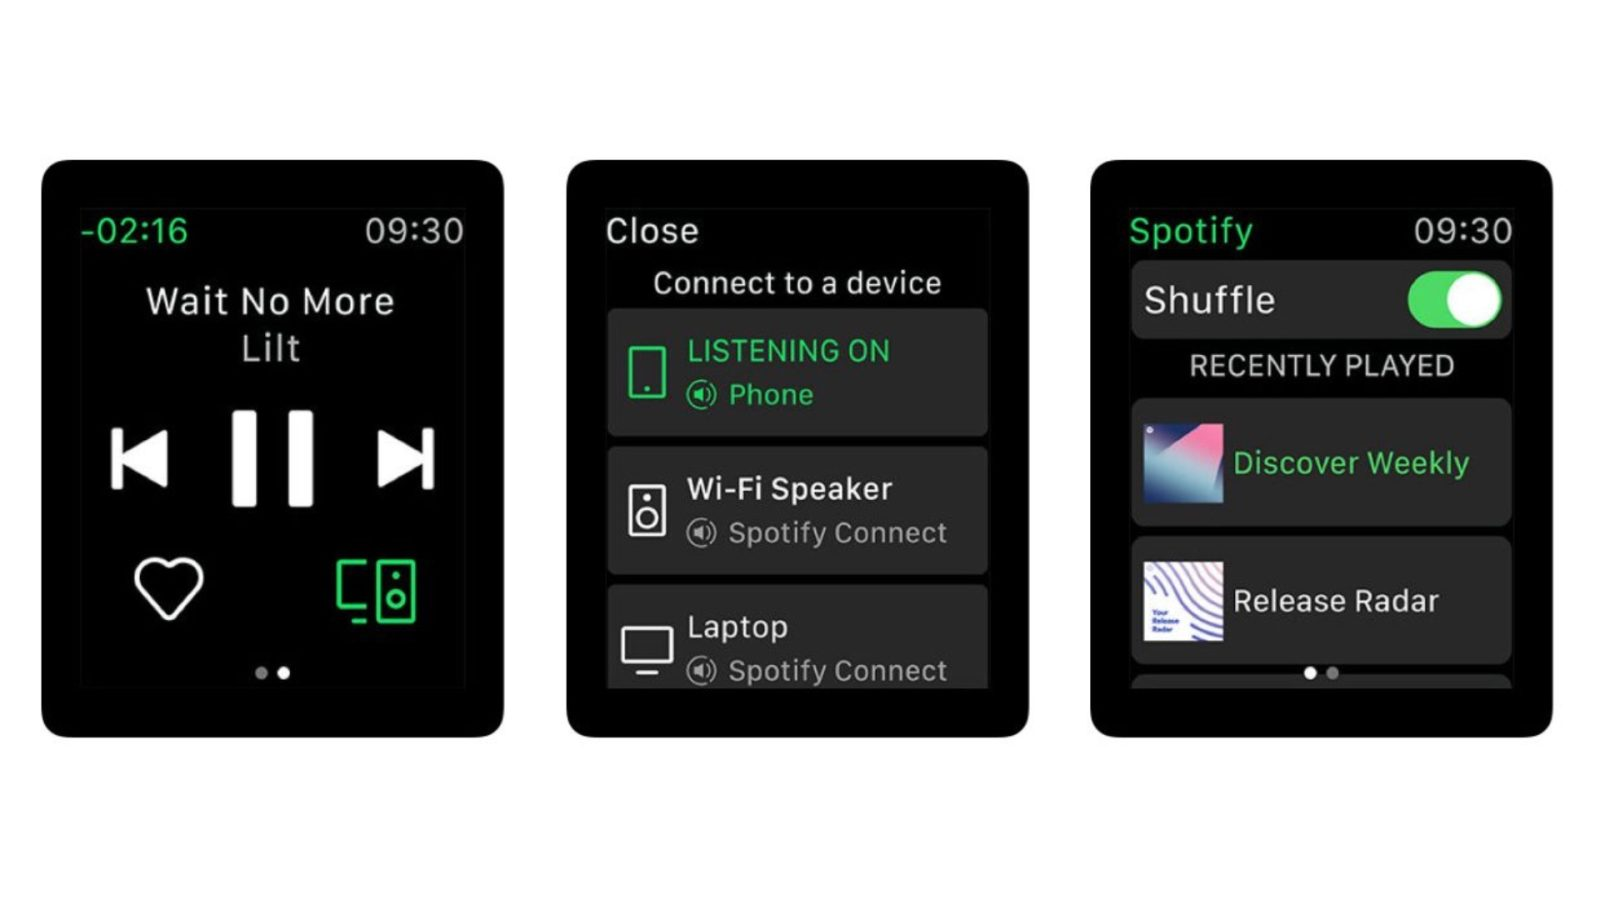 Latest Spotify update includes support for Apple Watch